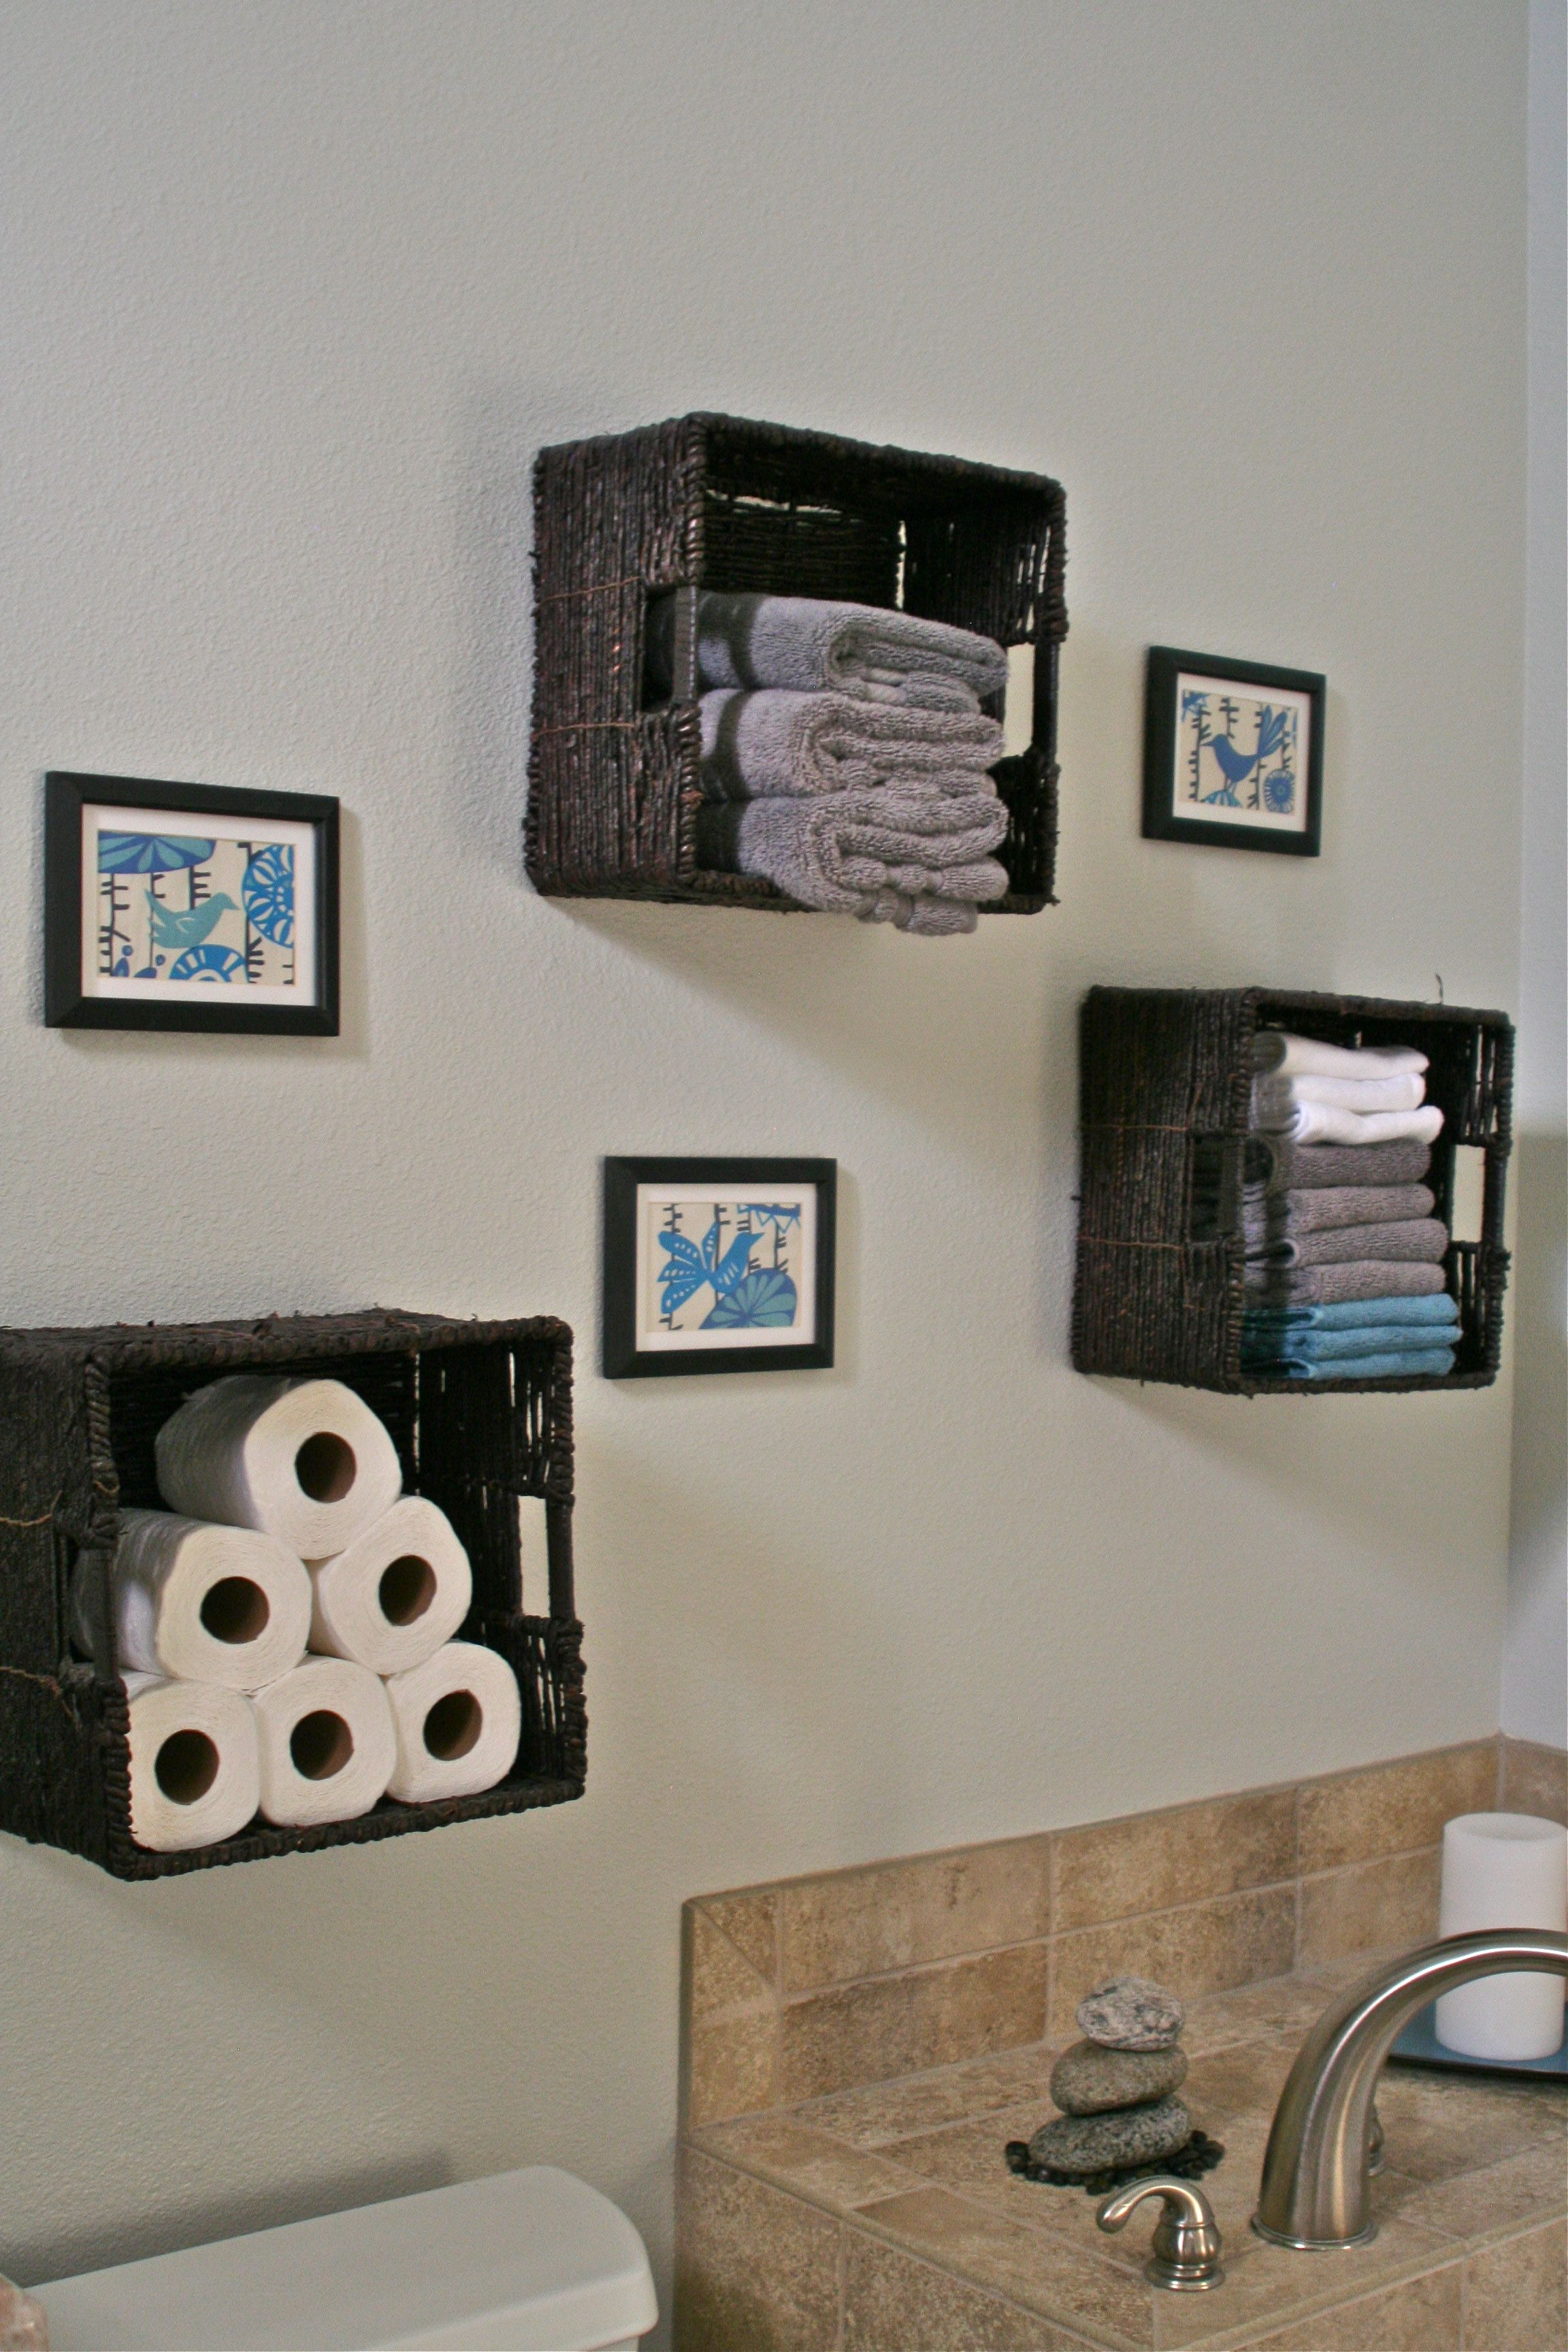 Instead of storing towels storage cloth diapers diy wall art basket pop blue in bathroom also baskets for toilet paper etc love the rh pinterest